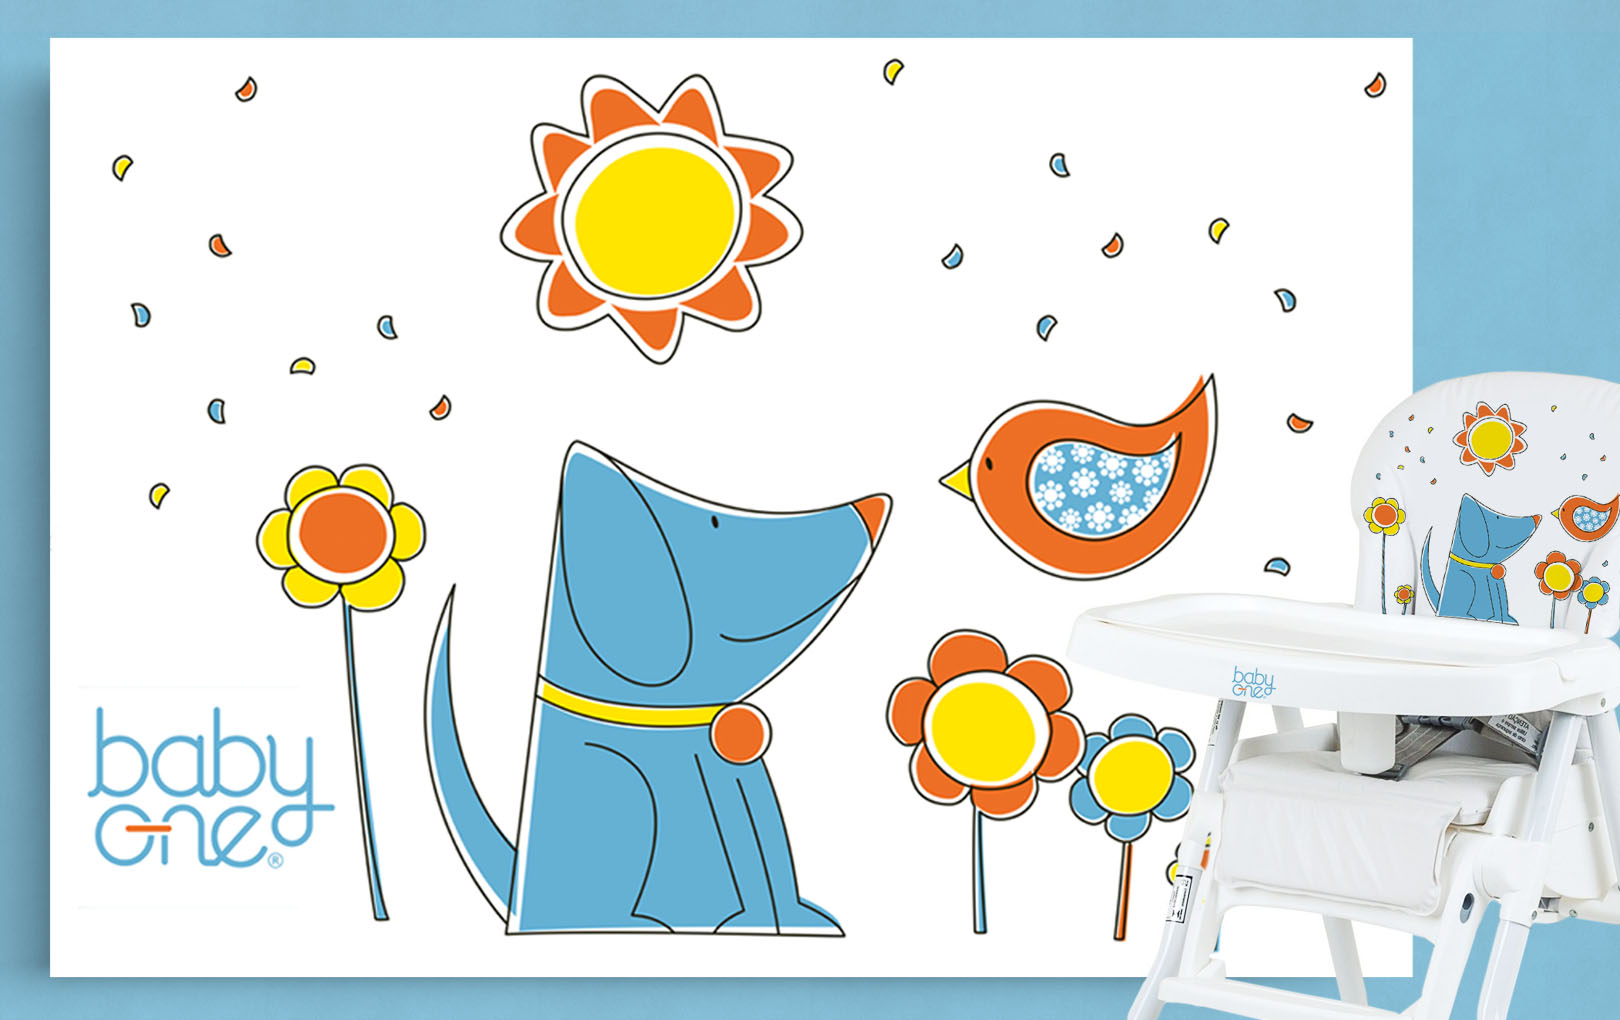 Illustrations for high chairs, changing tables and play yard.<br>